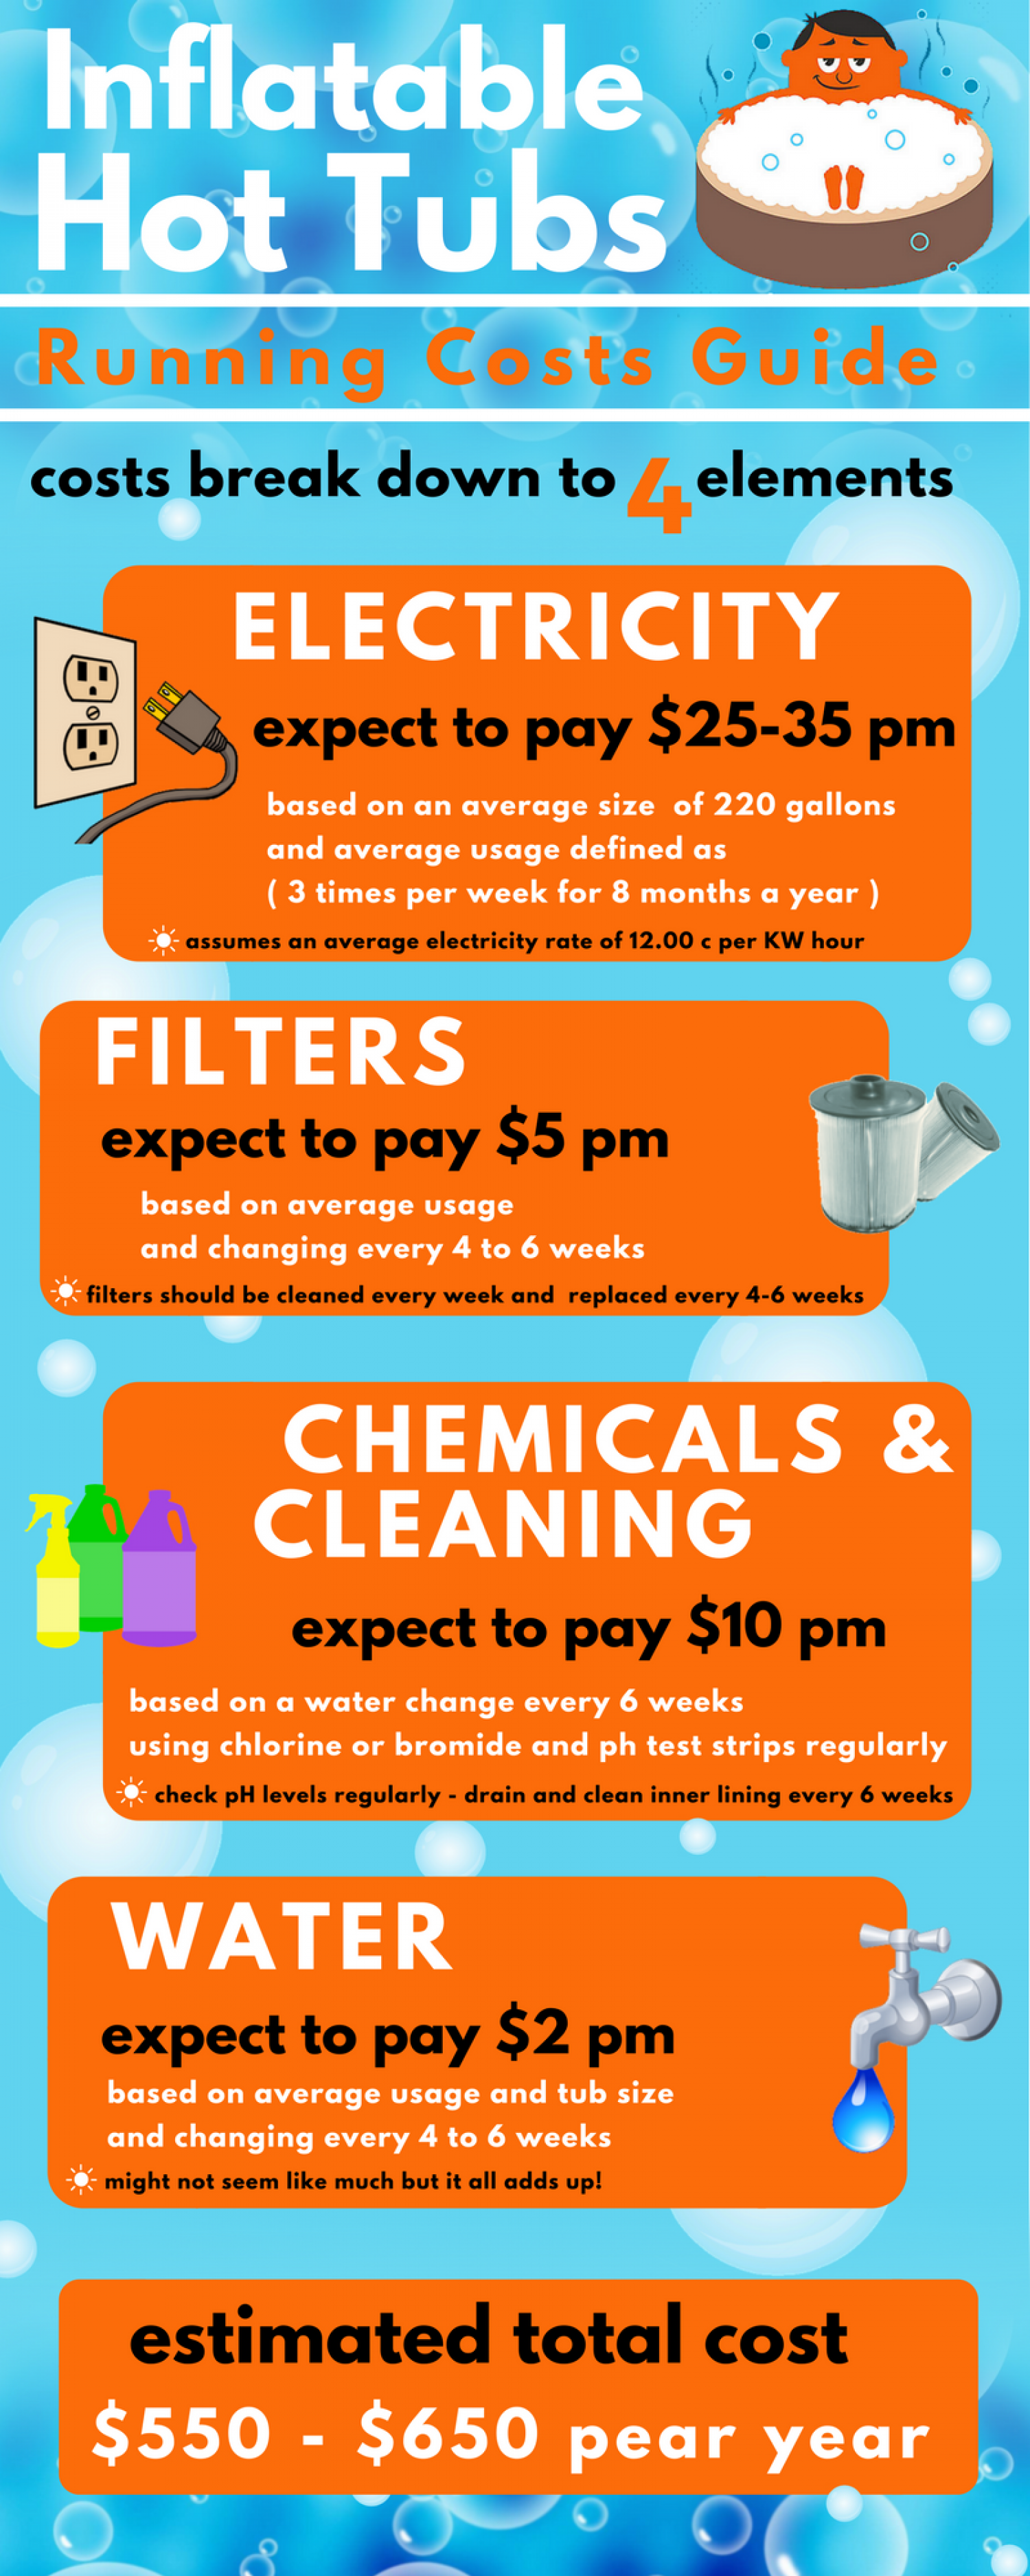 Inflatable Hot Tubs - The 4 Main Costs Infographic